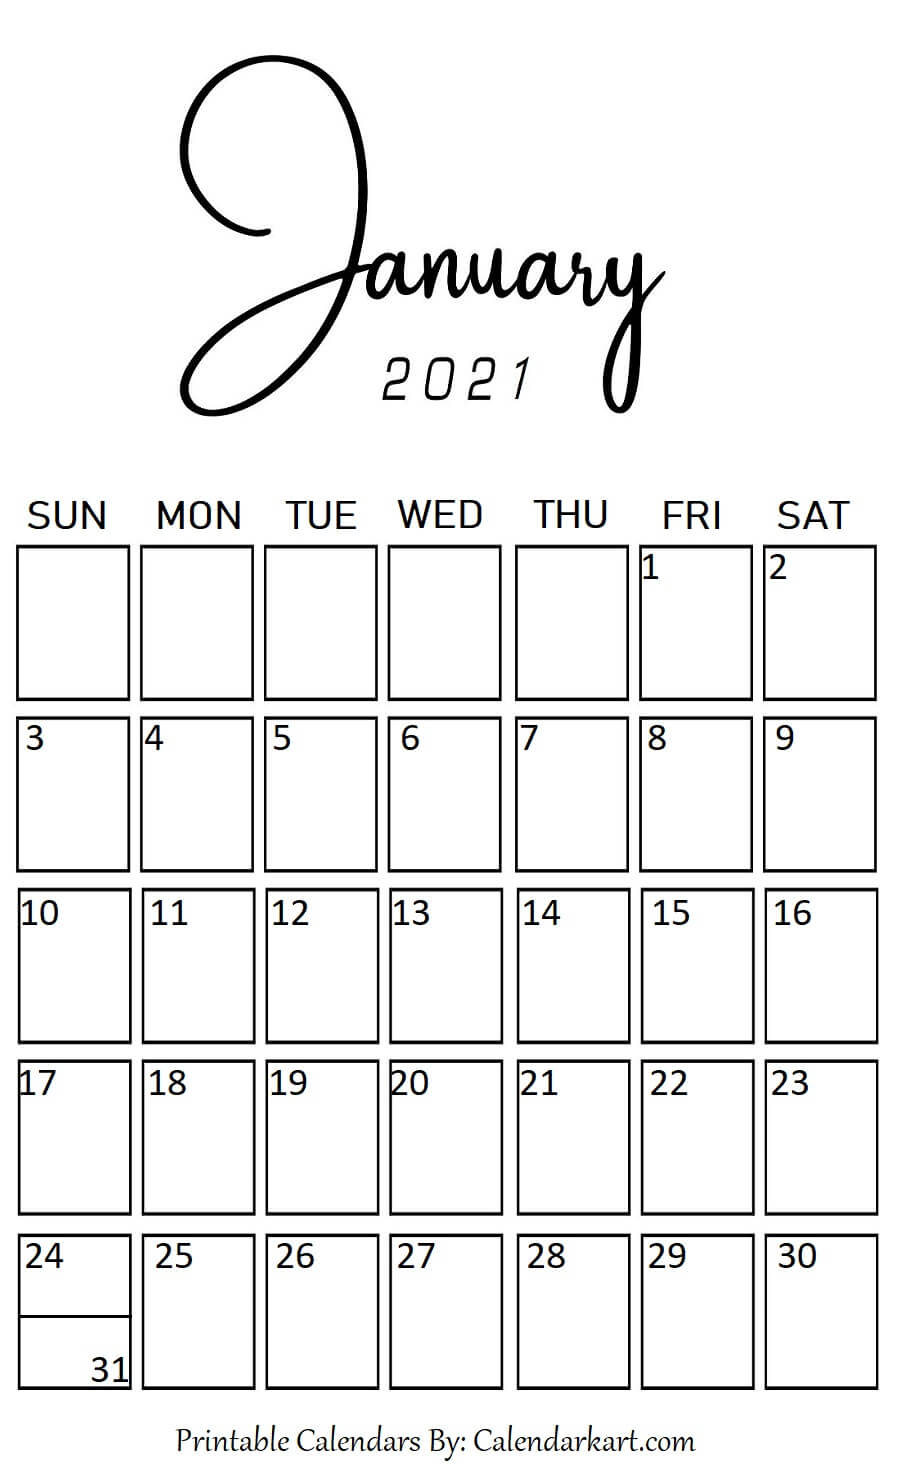 January 2021 Portrait (Vertical) Style Calendar | Calendar